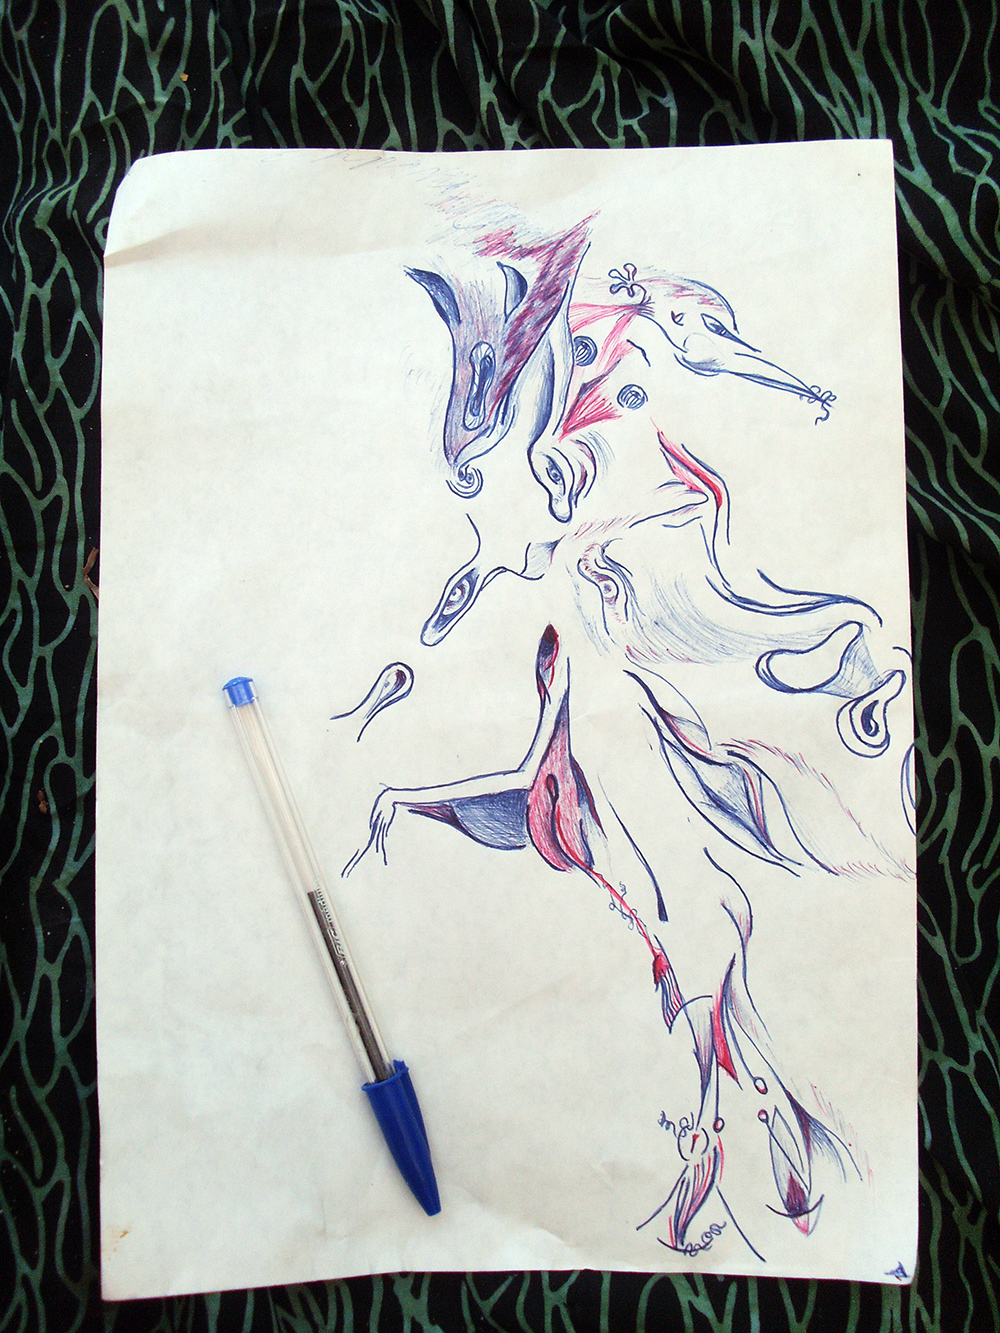 sketch by color pen